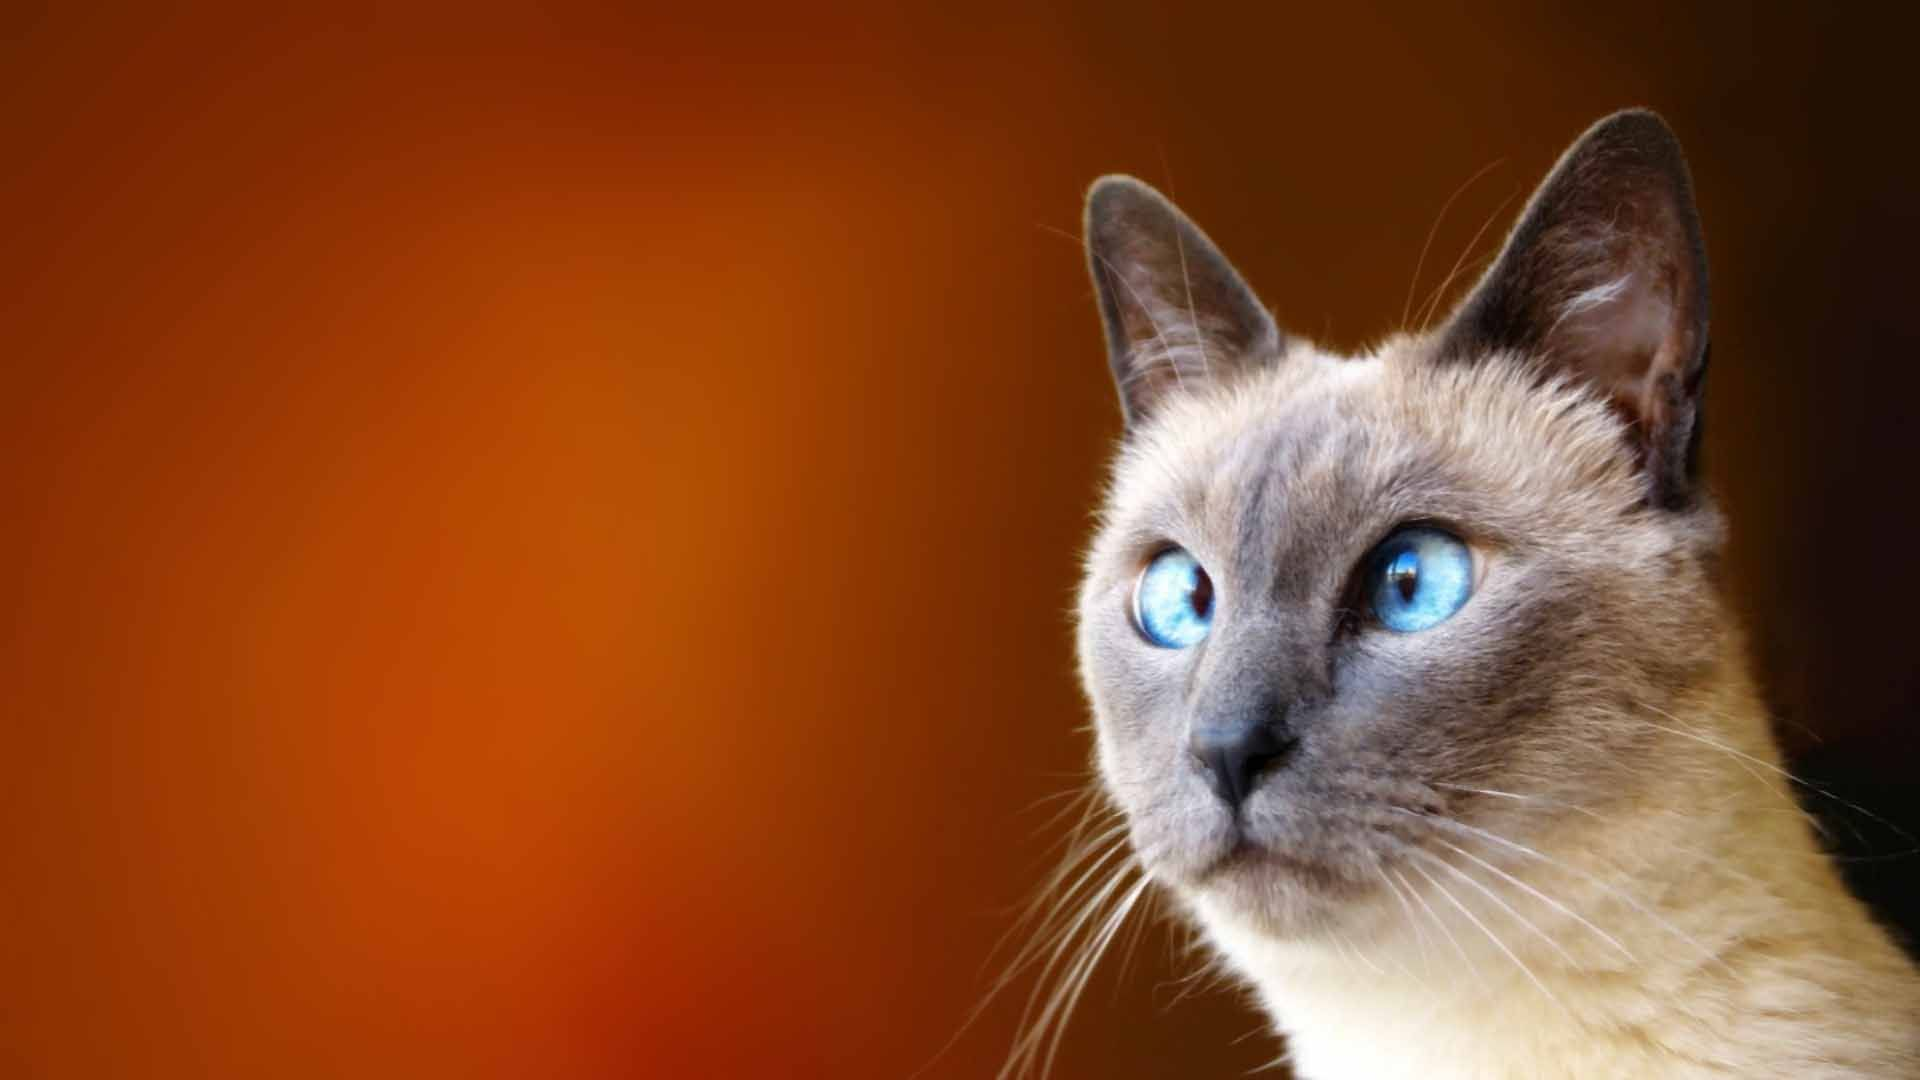 Best Ideas About Funny Cat Wallpaper On Pinterest Orange Cats 1600 900 Funny Cat Backgrounds 47 Wallpapers Ad Funny Cat Wallpaper Funny Cats Funny Animals